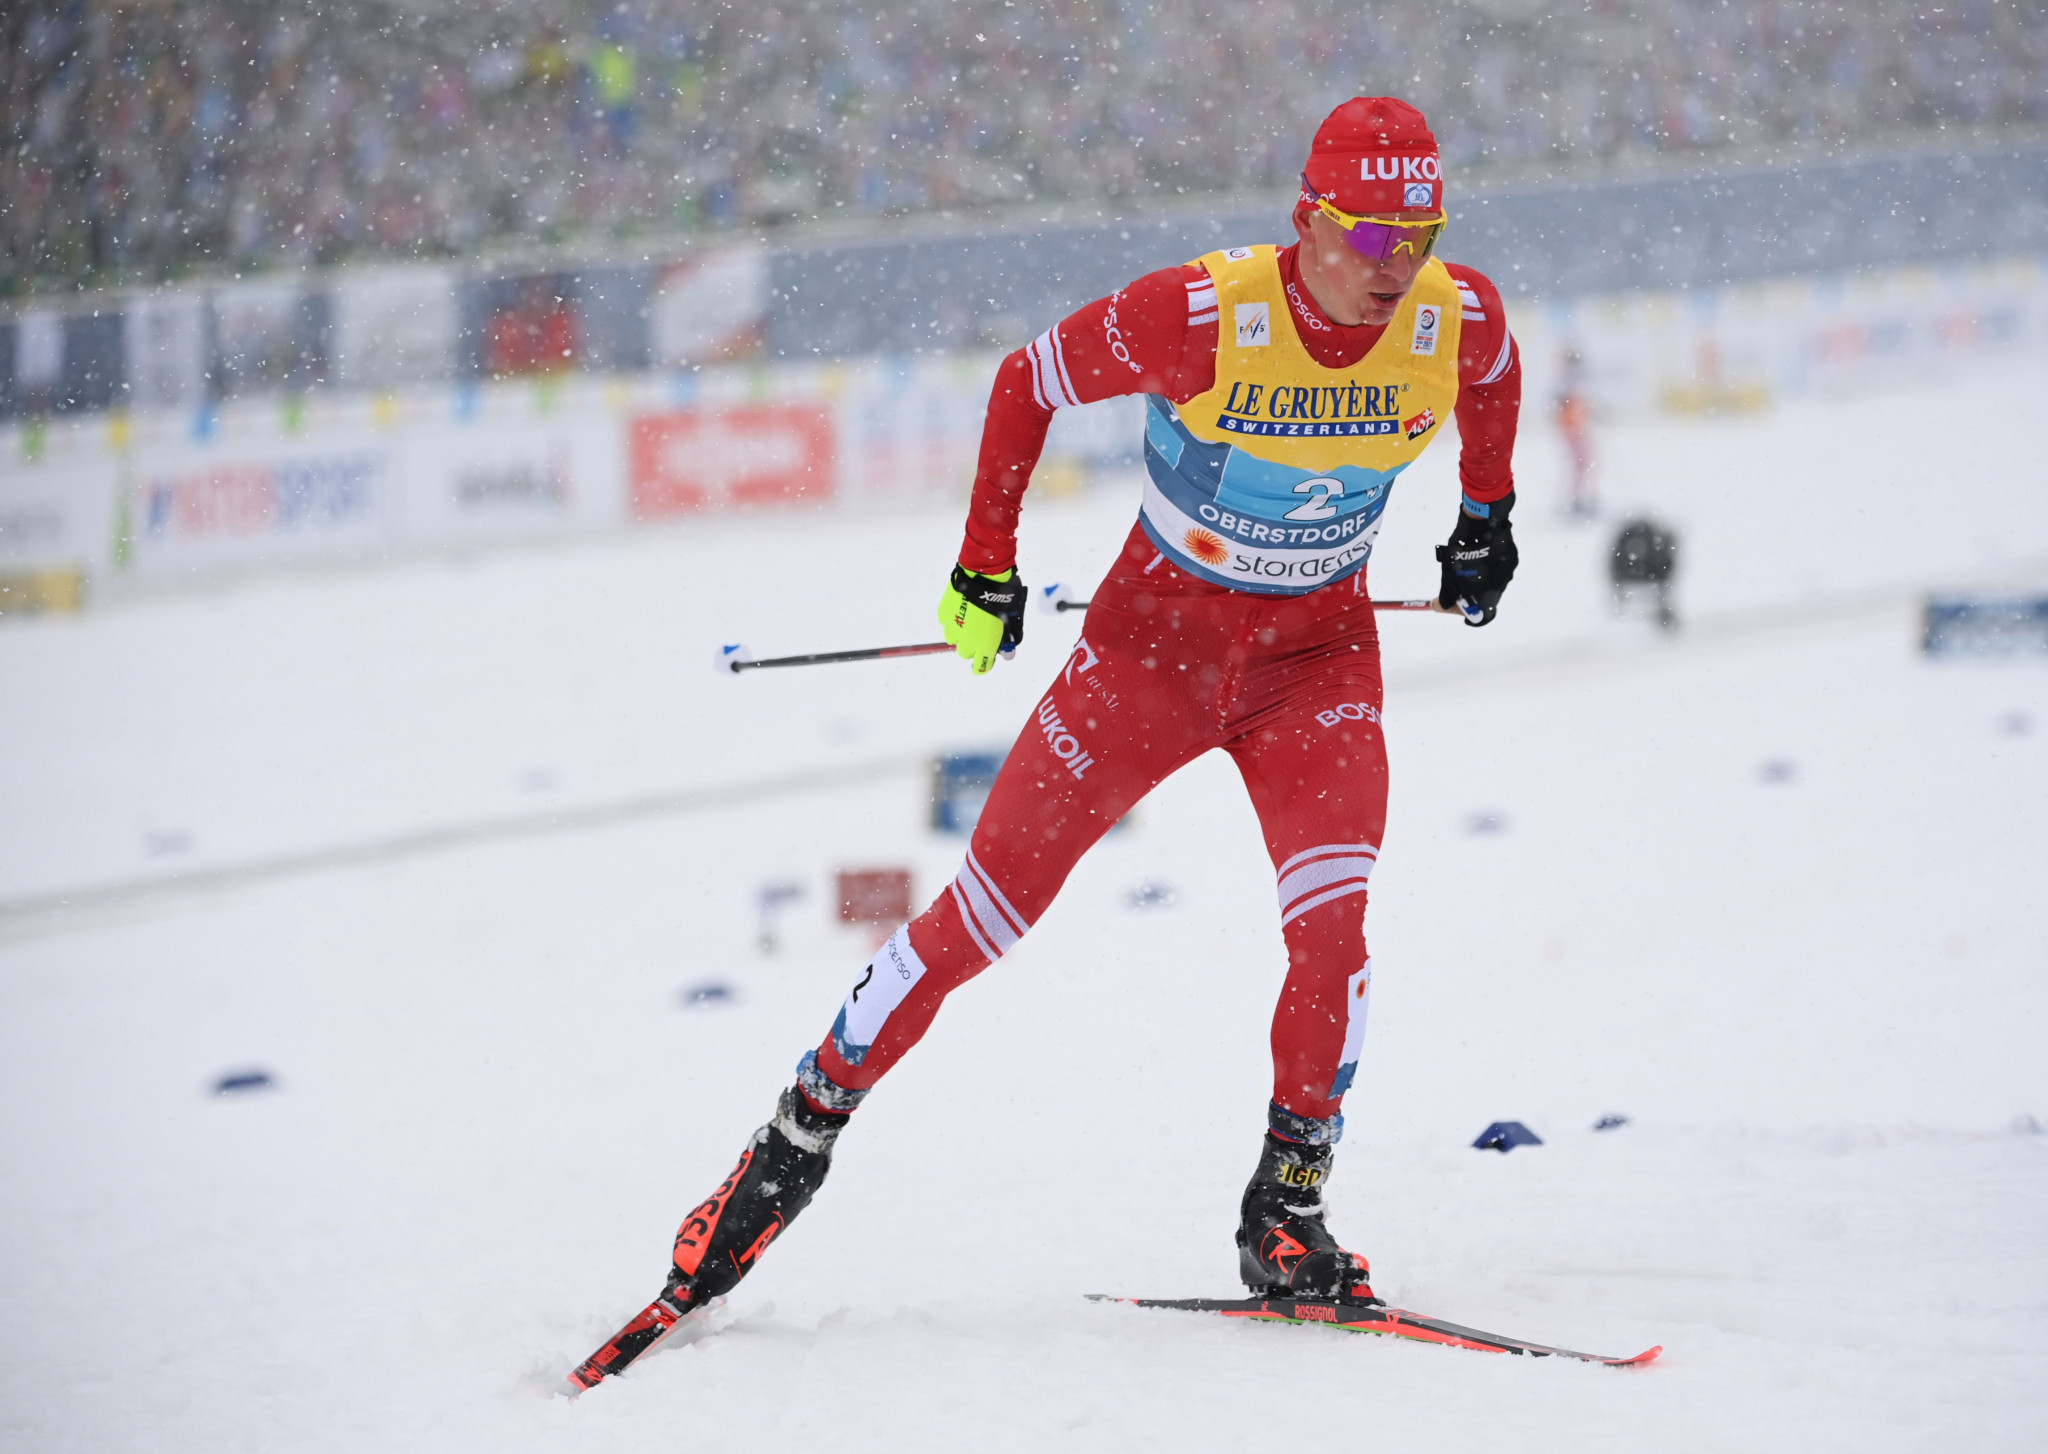 Alexander Bolshunov won the men's mass start at the FIS Cross-Country World Cup in Engadin ©Getty Images